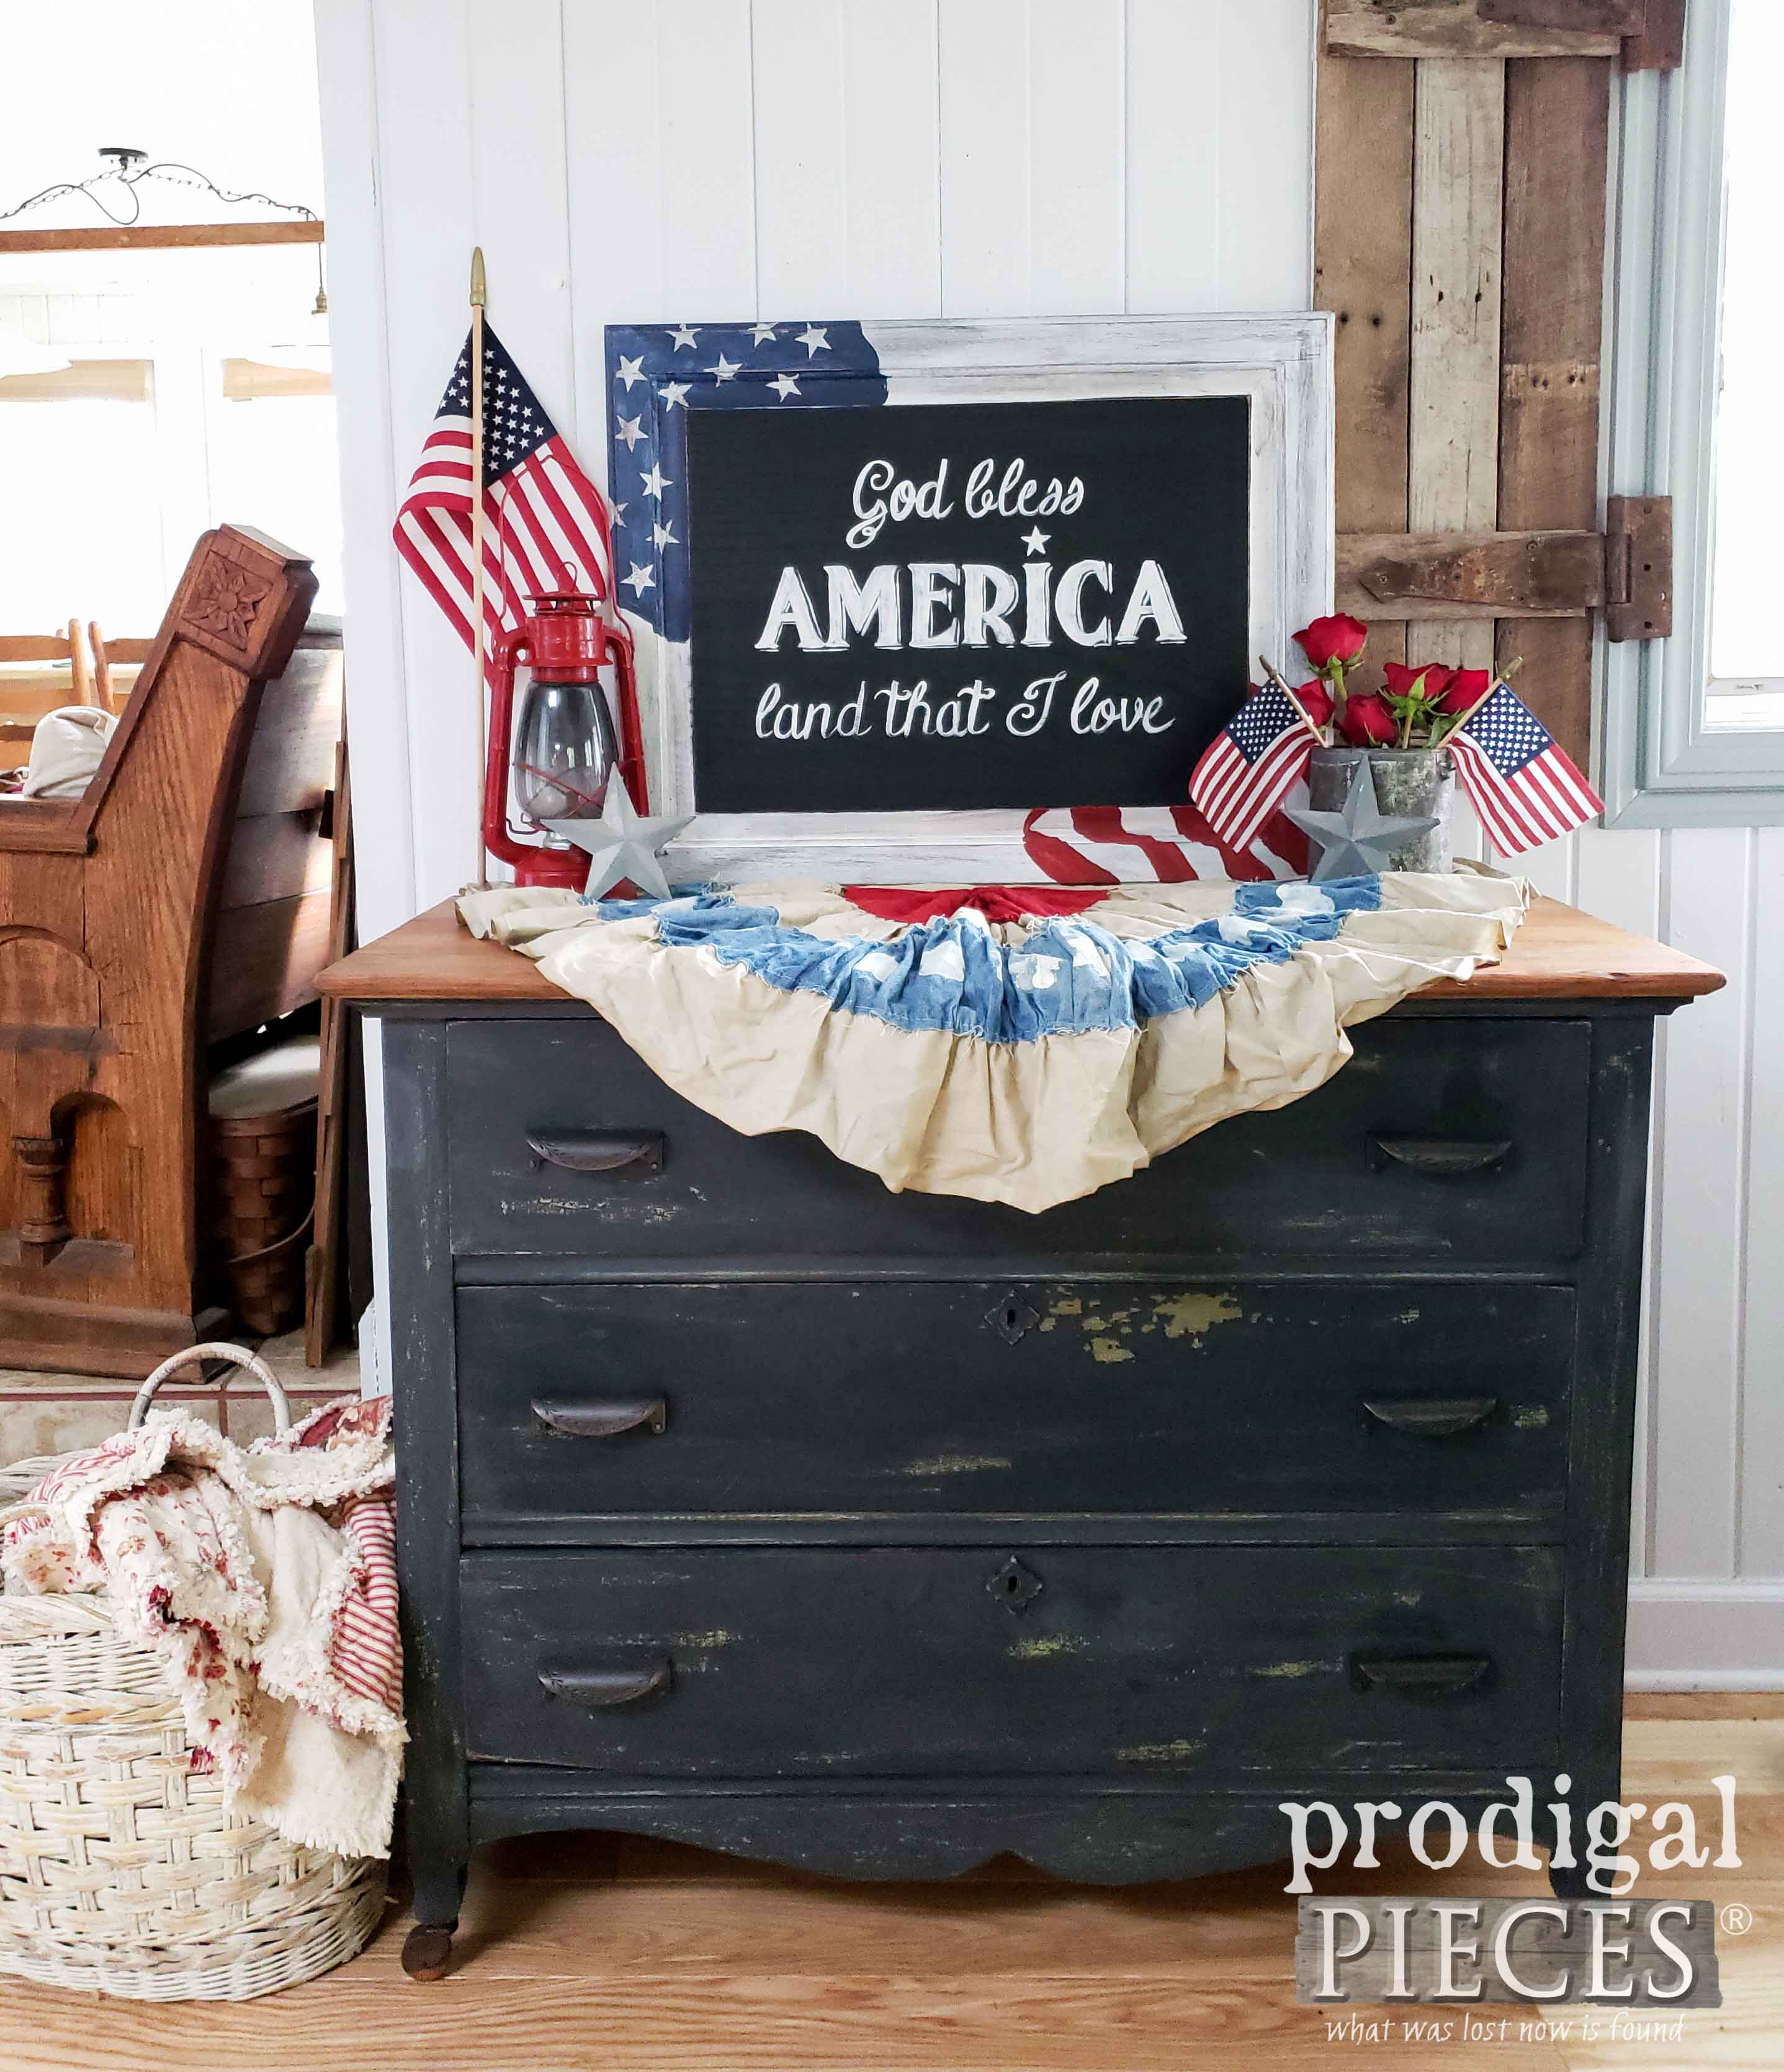 Farmhouse Style 4th of July Decor by Larissa of Prodigal Pieces | prodigalpieces.com #prodigalpieces #farmhouse #diy #home #homedecor #4thofjuly